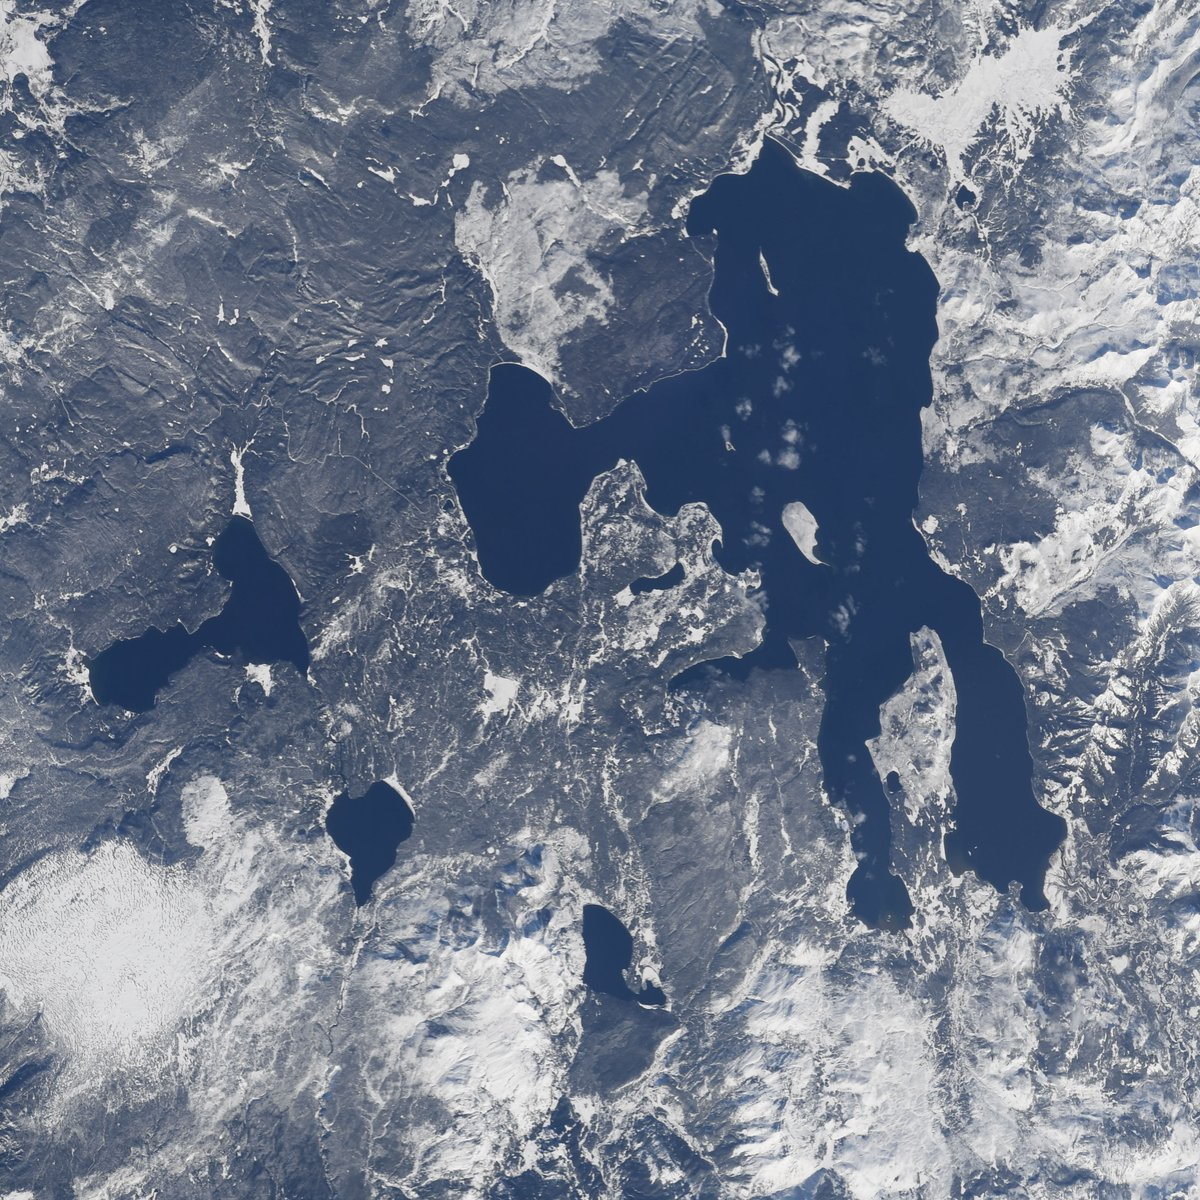 The four seasons of the incredible Yellowstone Lake in @YellowstoneNPS. Spending 11 months in space means getting to watch your favorite places on Earth even as they change throughout the year.